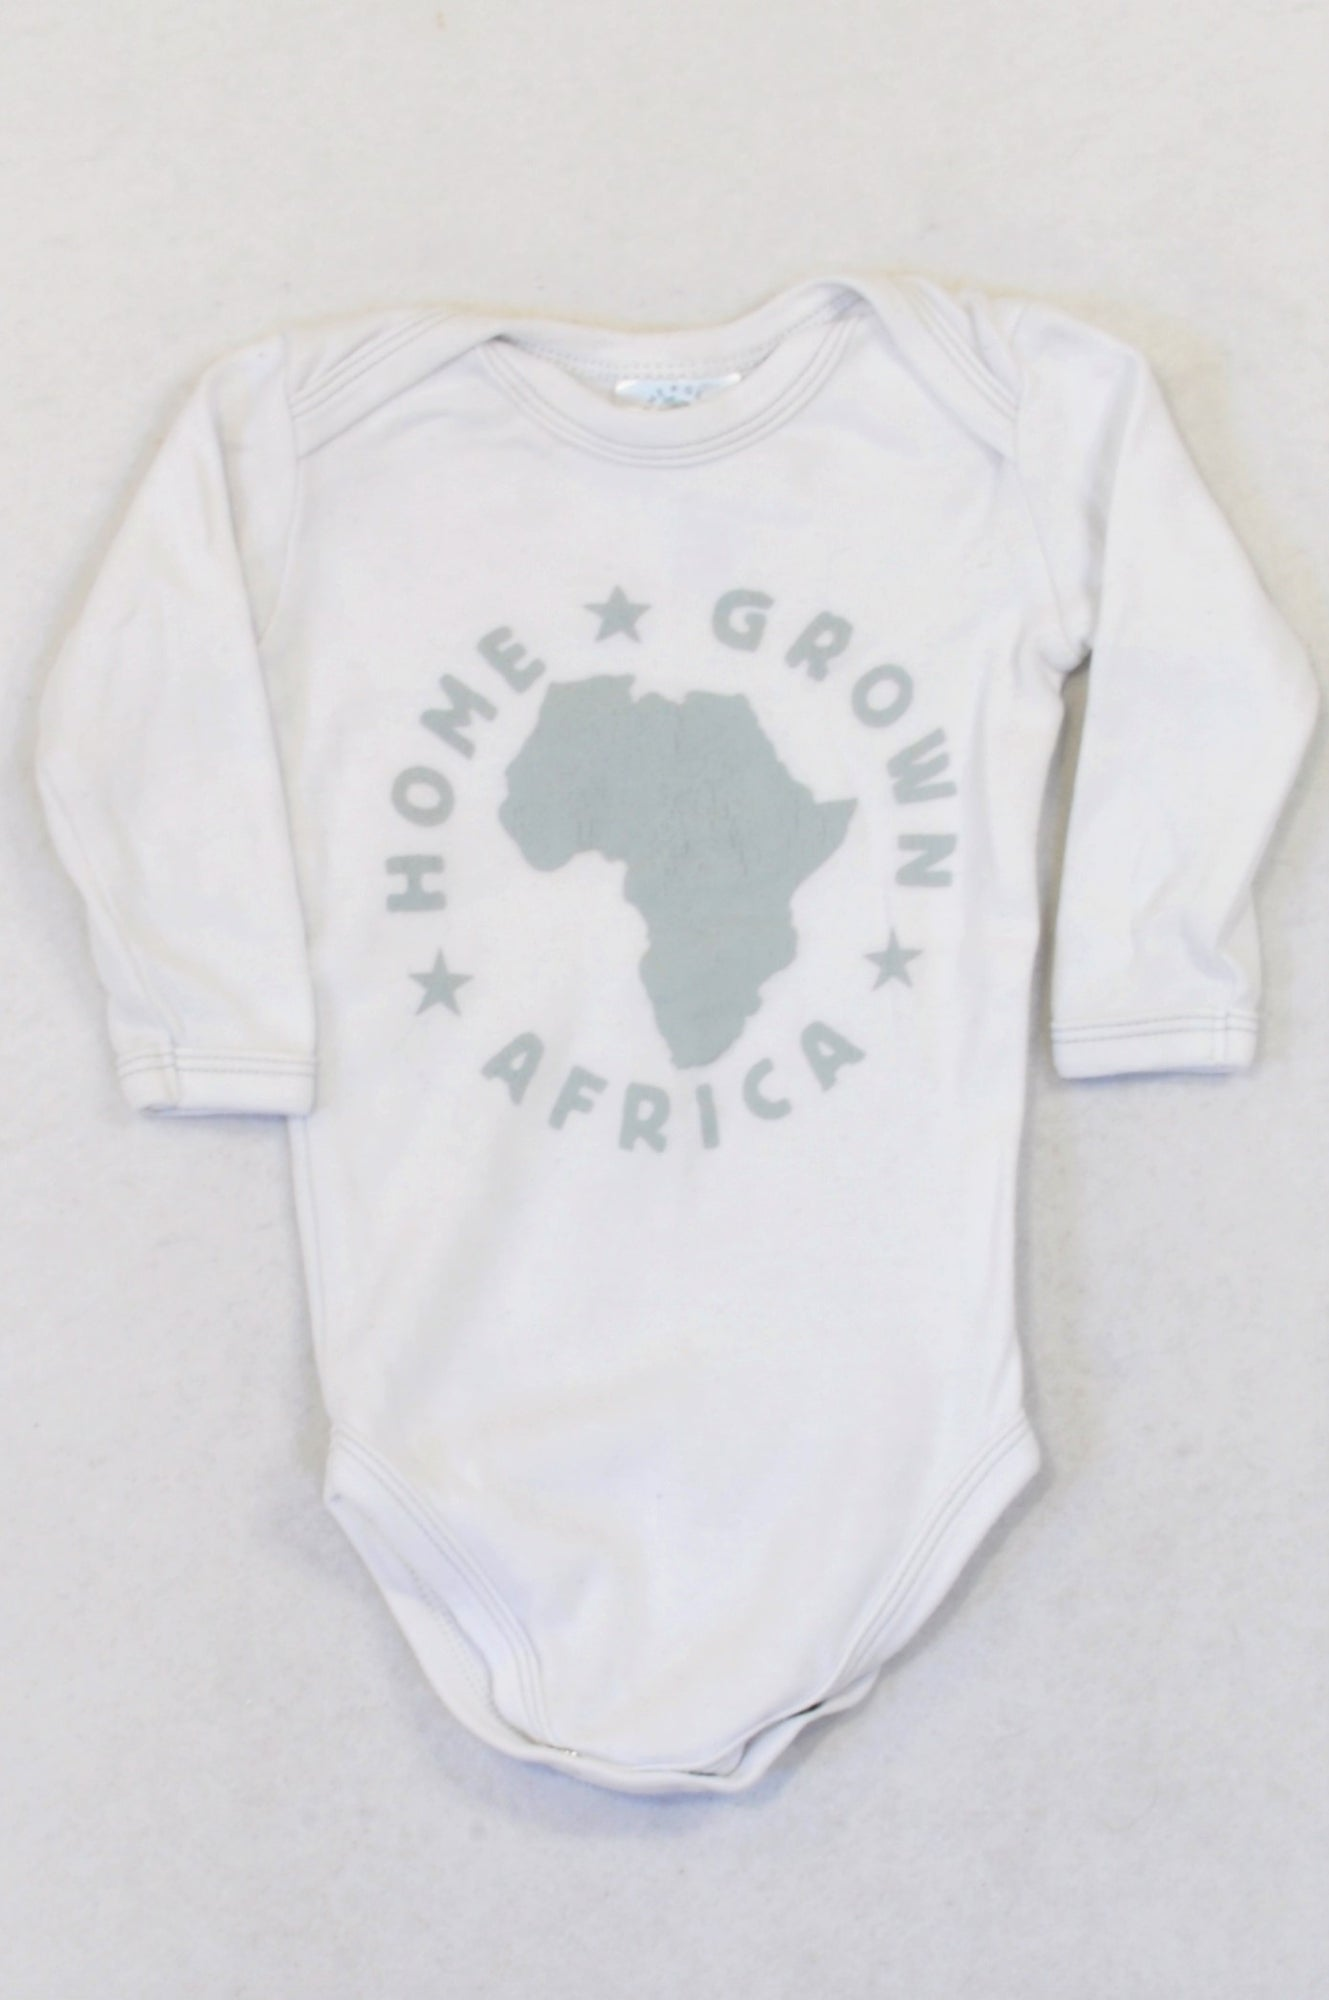 Home Grown White & Grey Print Africa Baby Grow Unisex 3-6 months